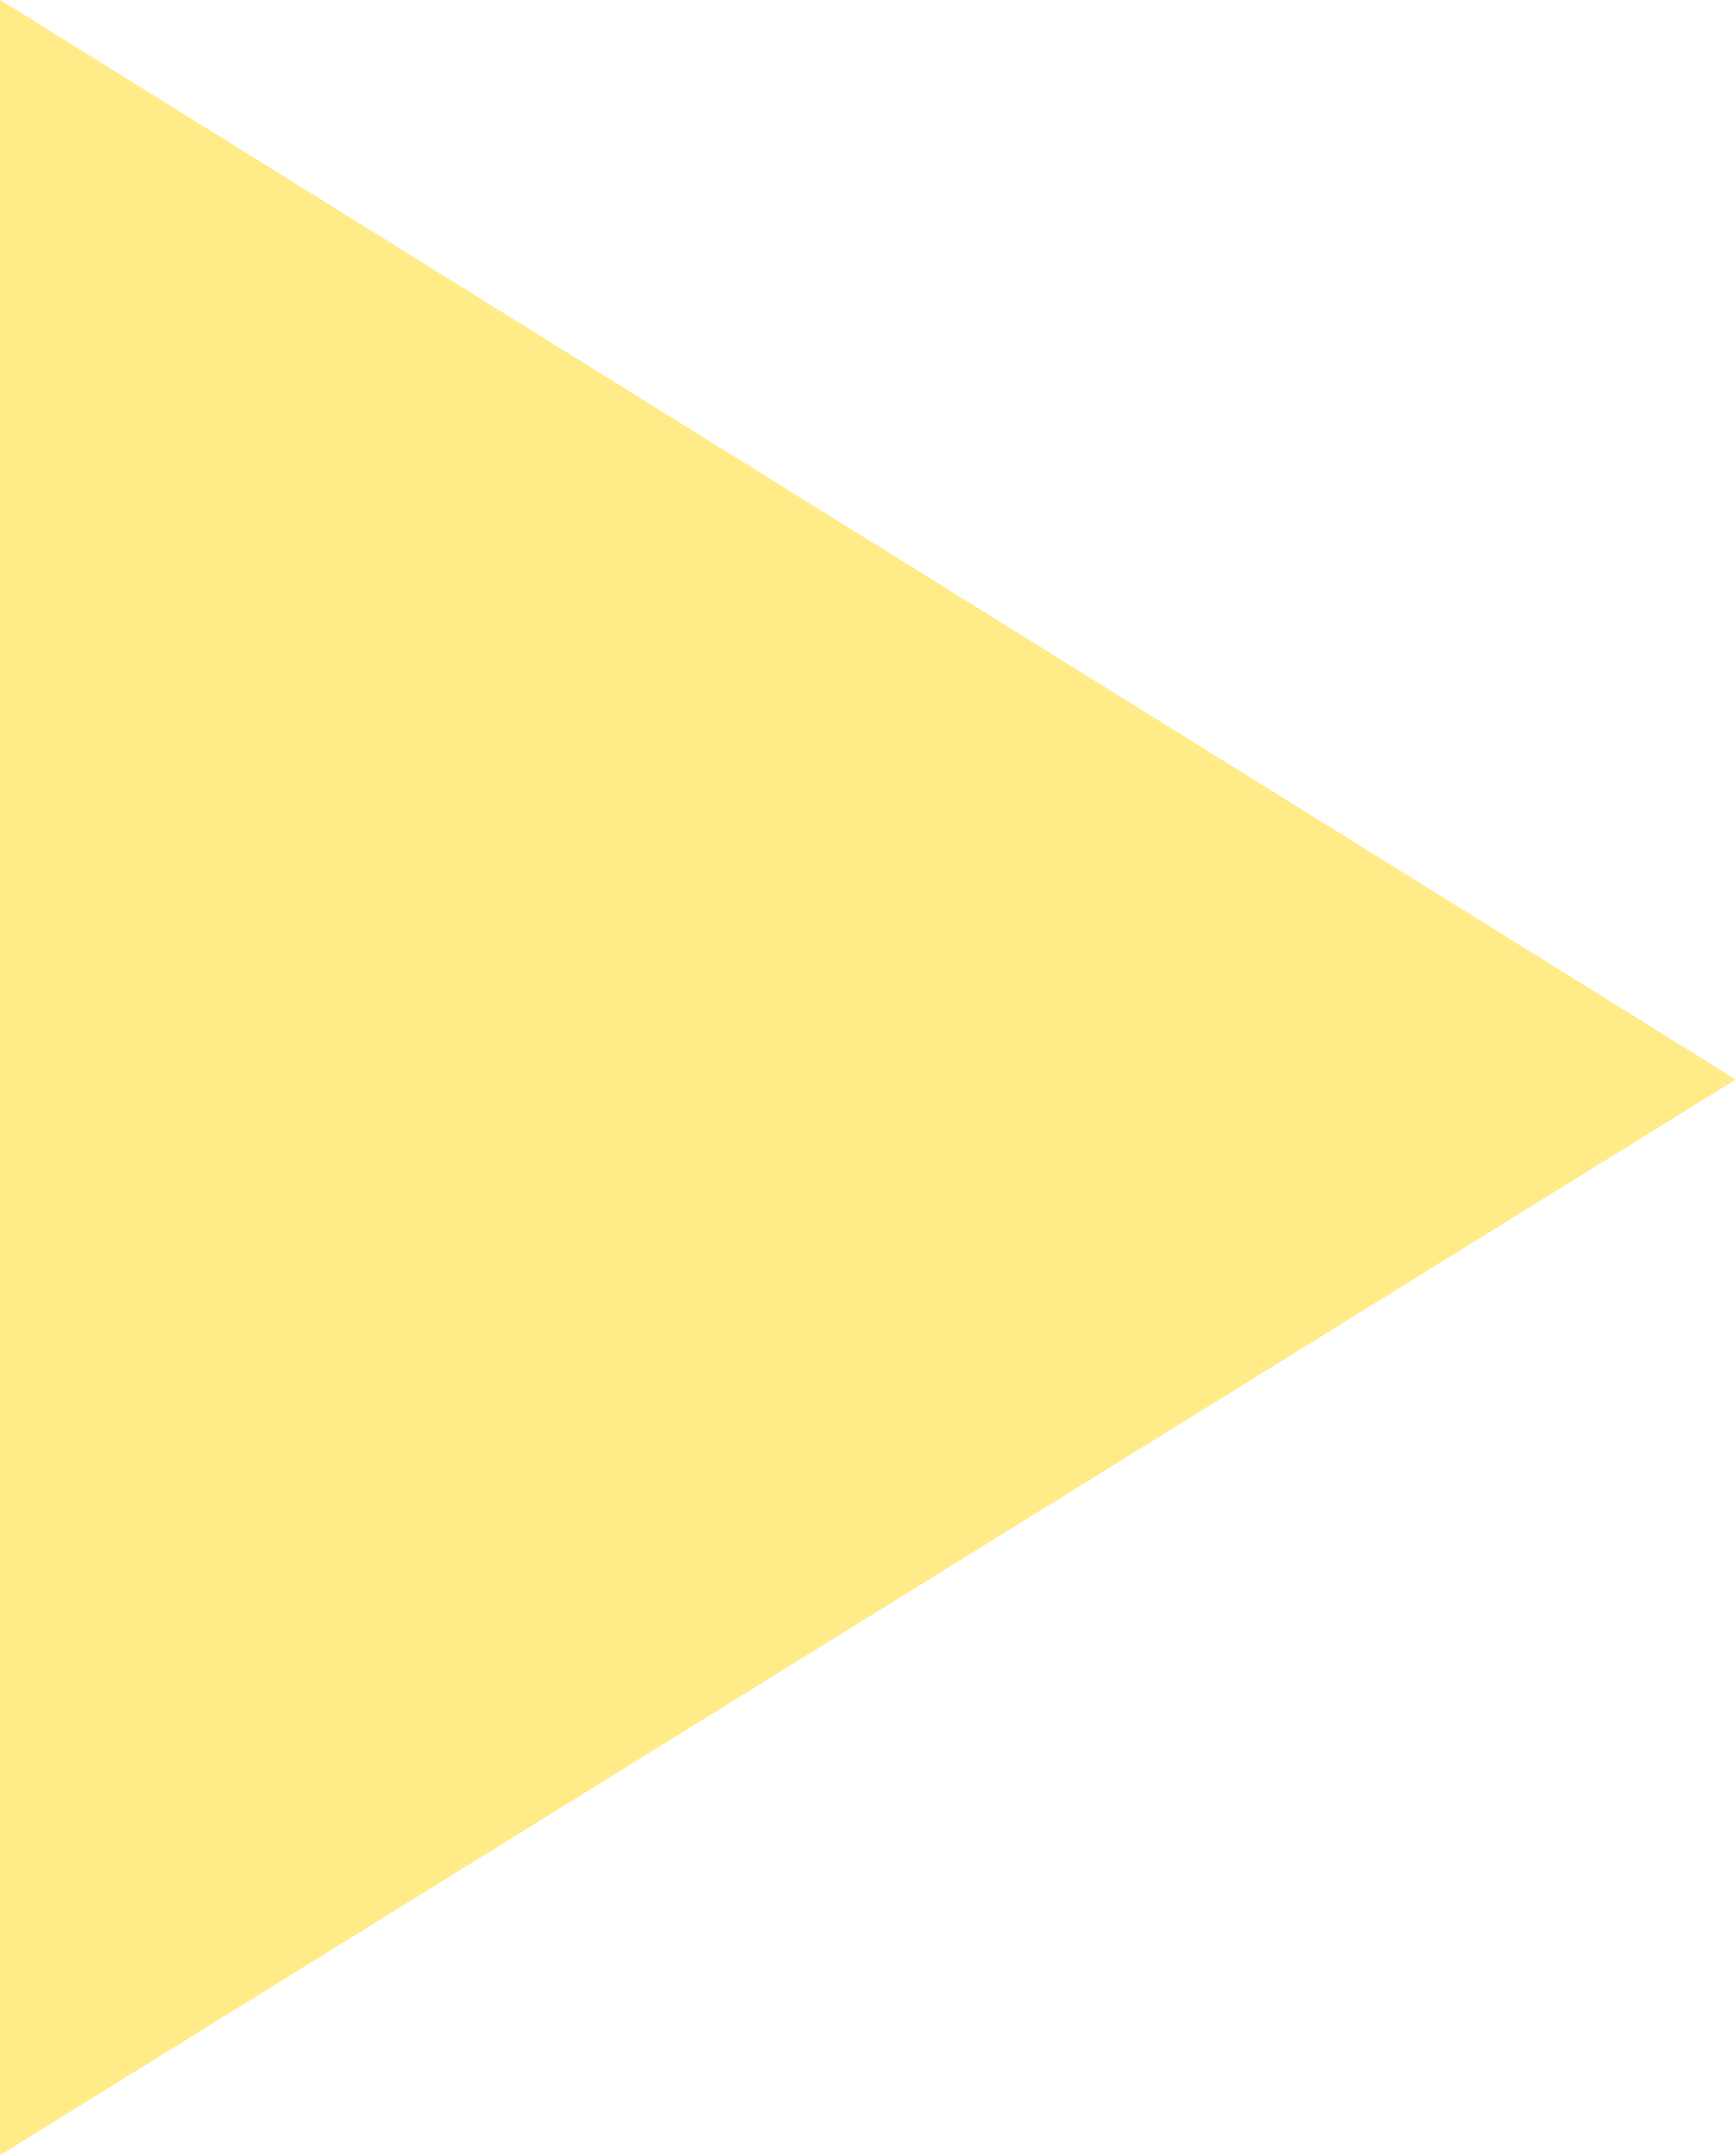 arrow-yellow